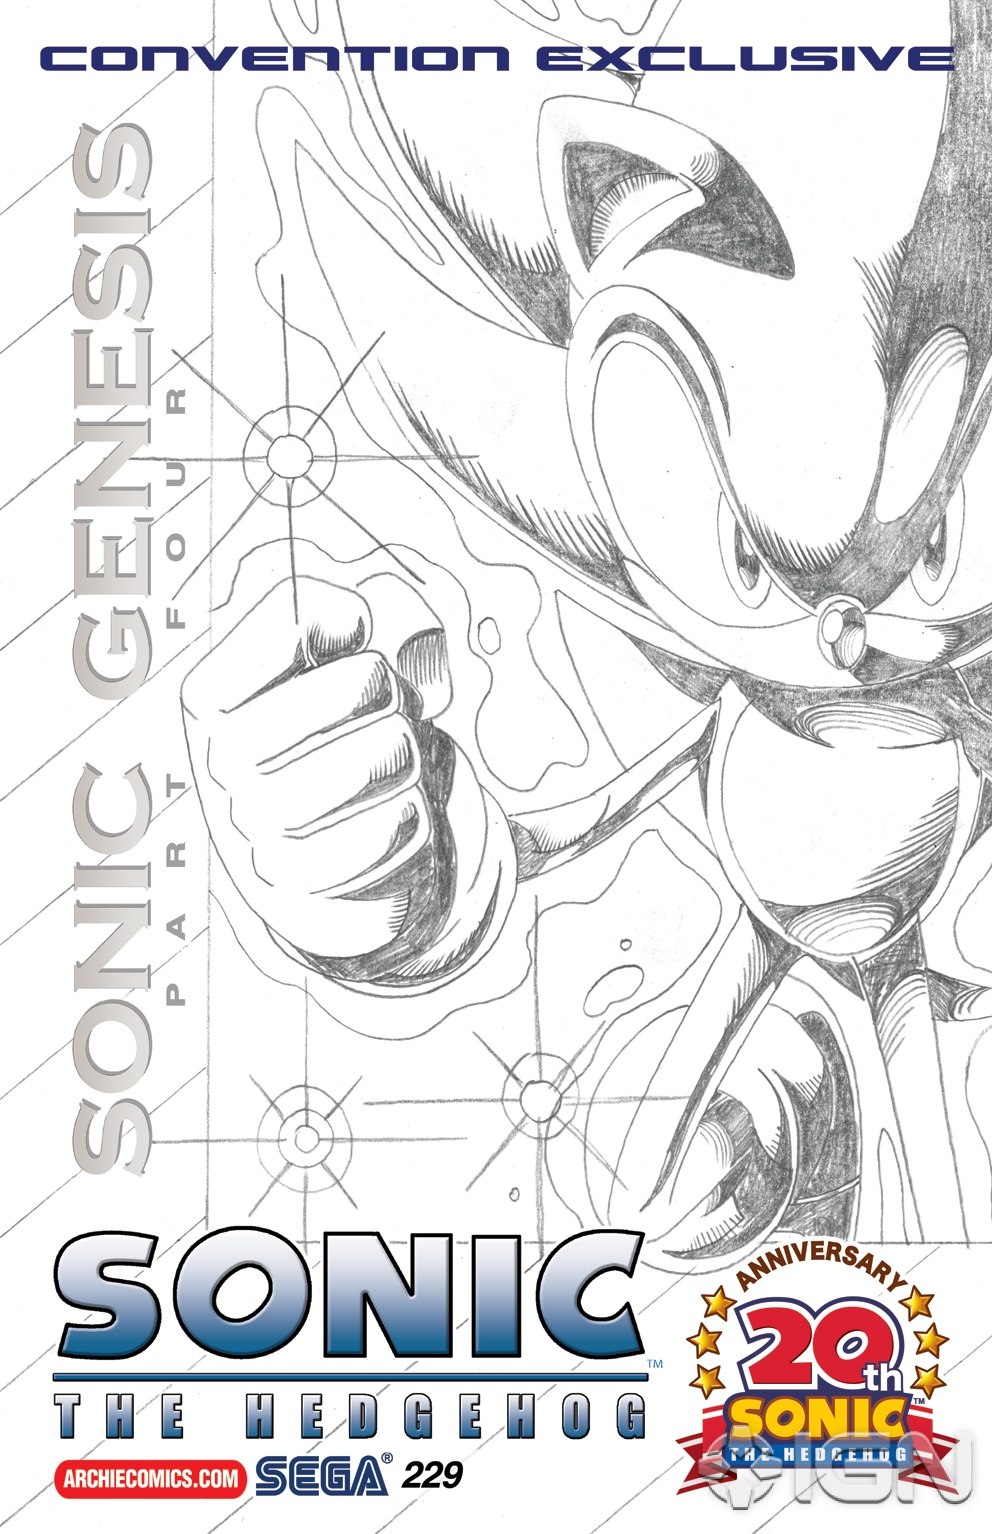 sonic-and-mega-man-nycc-exclusive-covers-20110927013517567